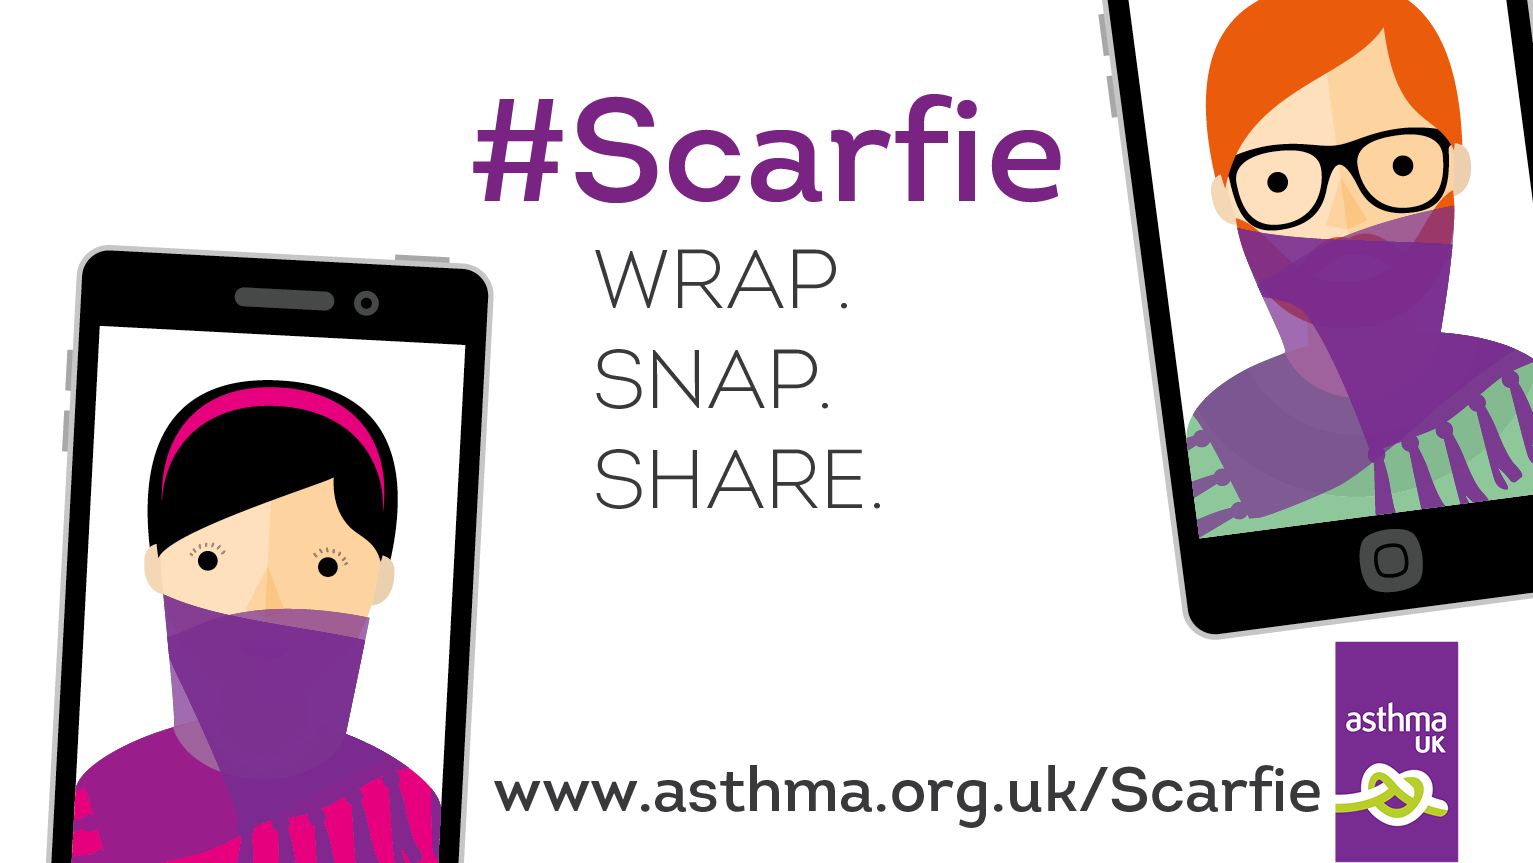 #Scarfie